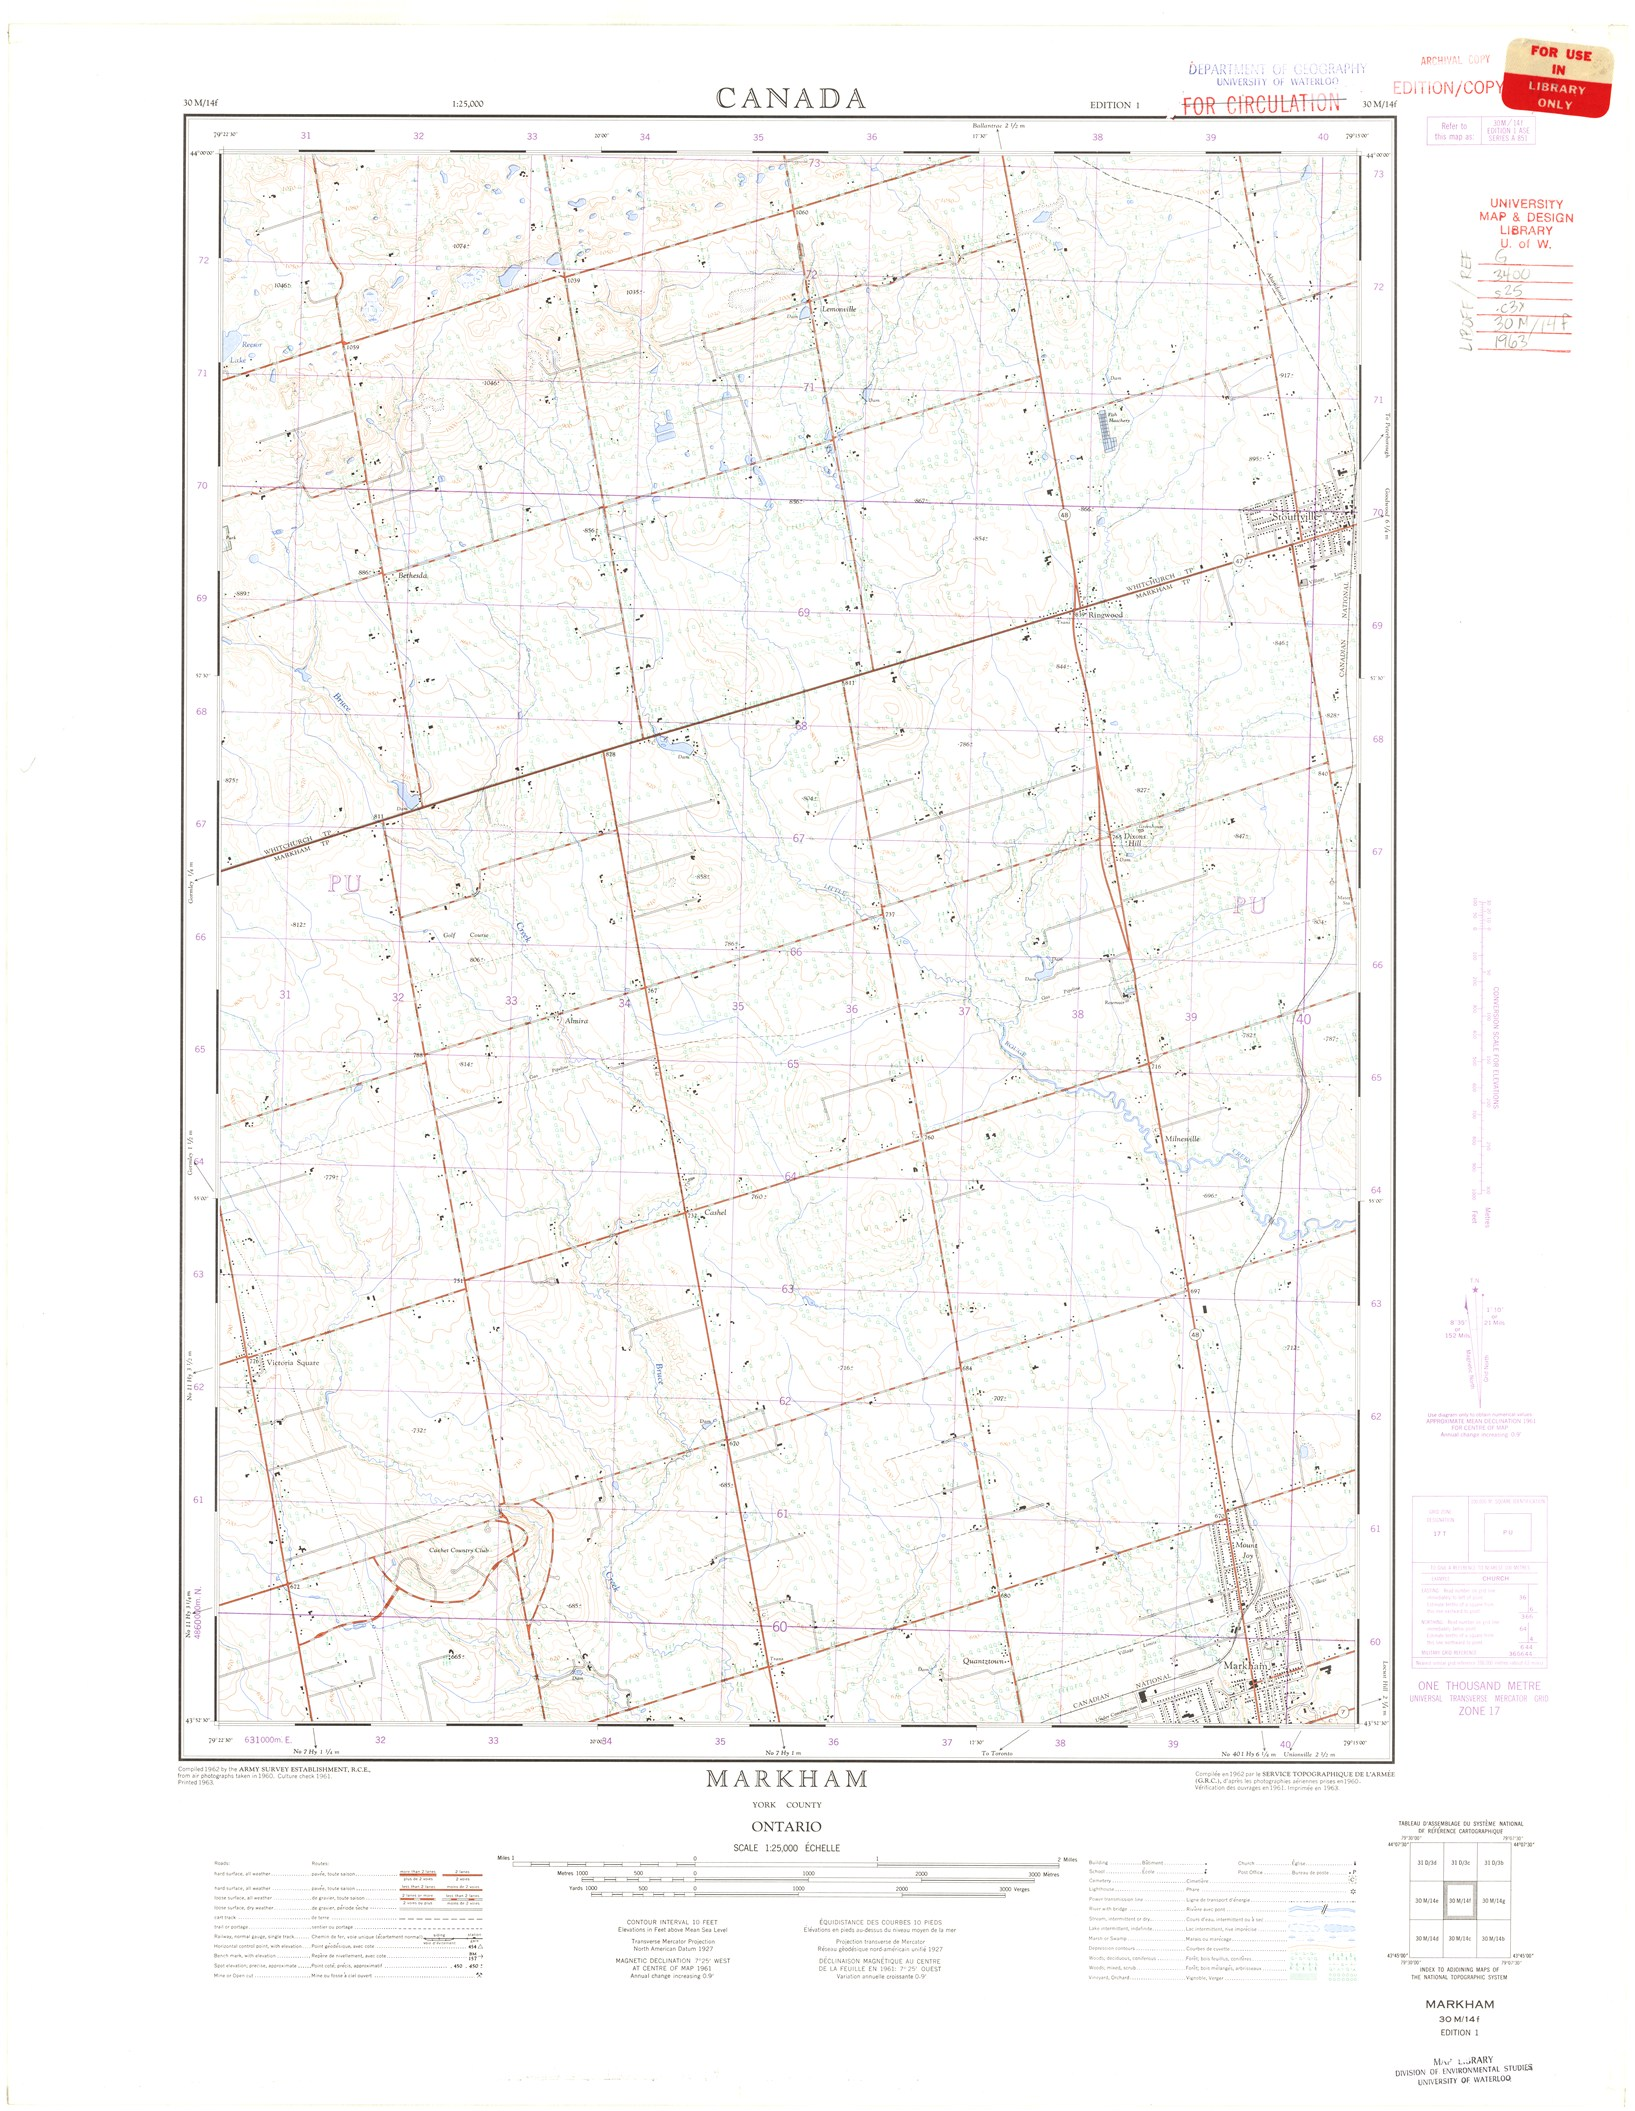 1:25,000 National Topographic System (NTS)(downloadable